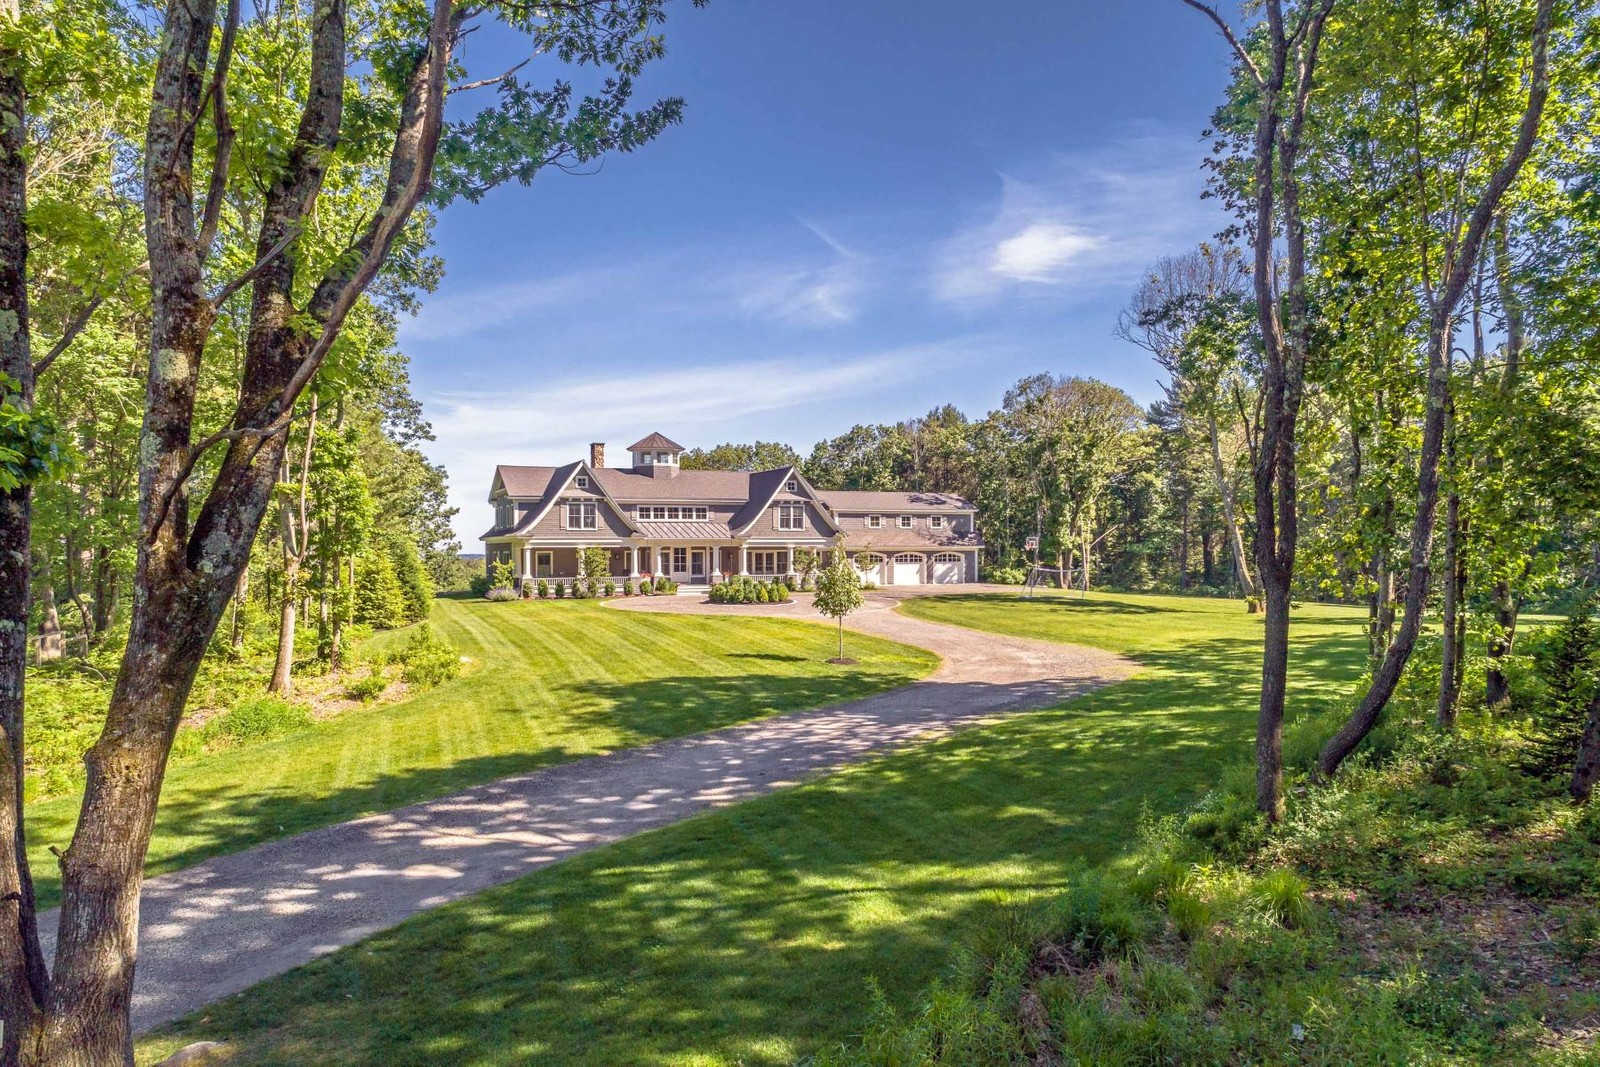 Single Family Homes for Sale at 5 Overlook Drive Cumberland, Maine 04110 United States